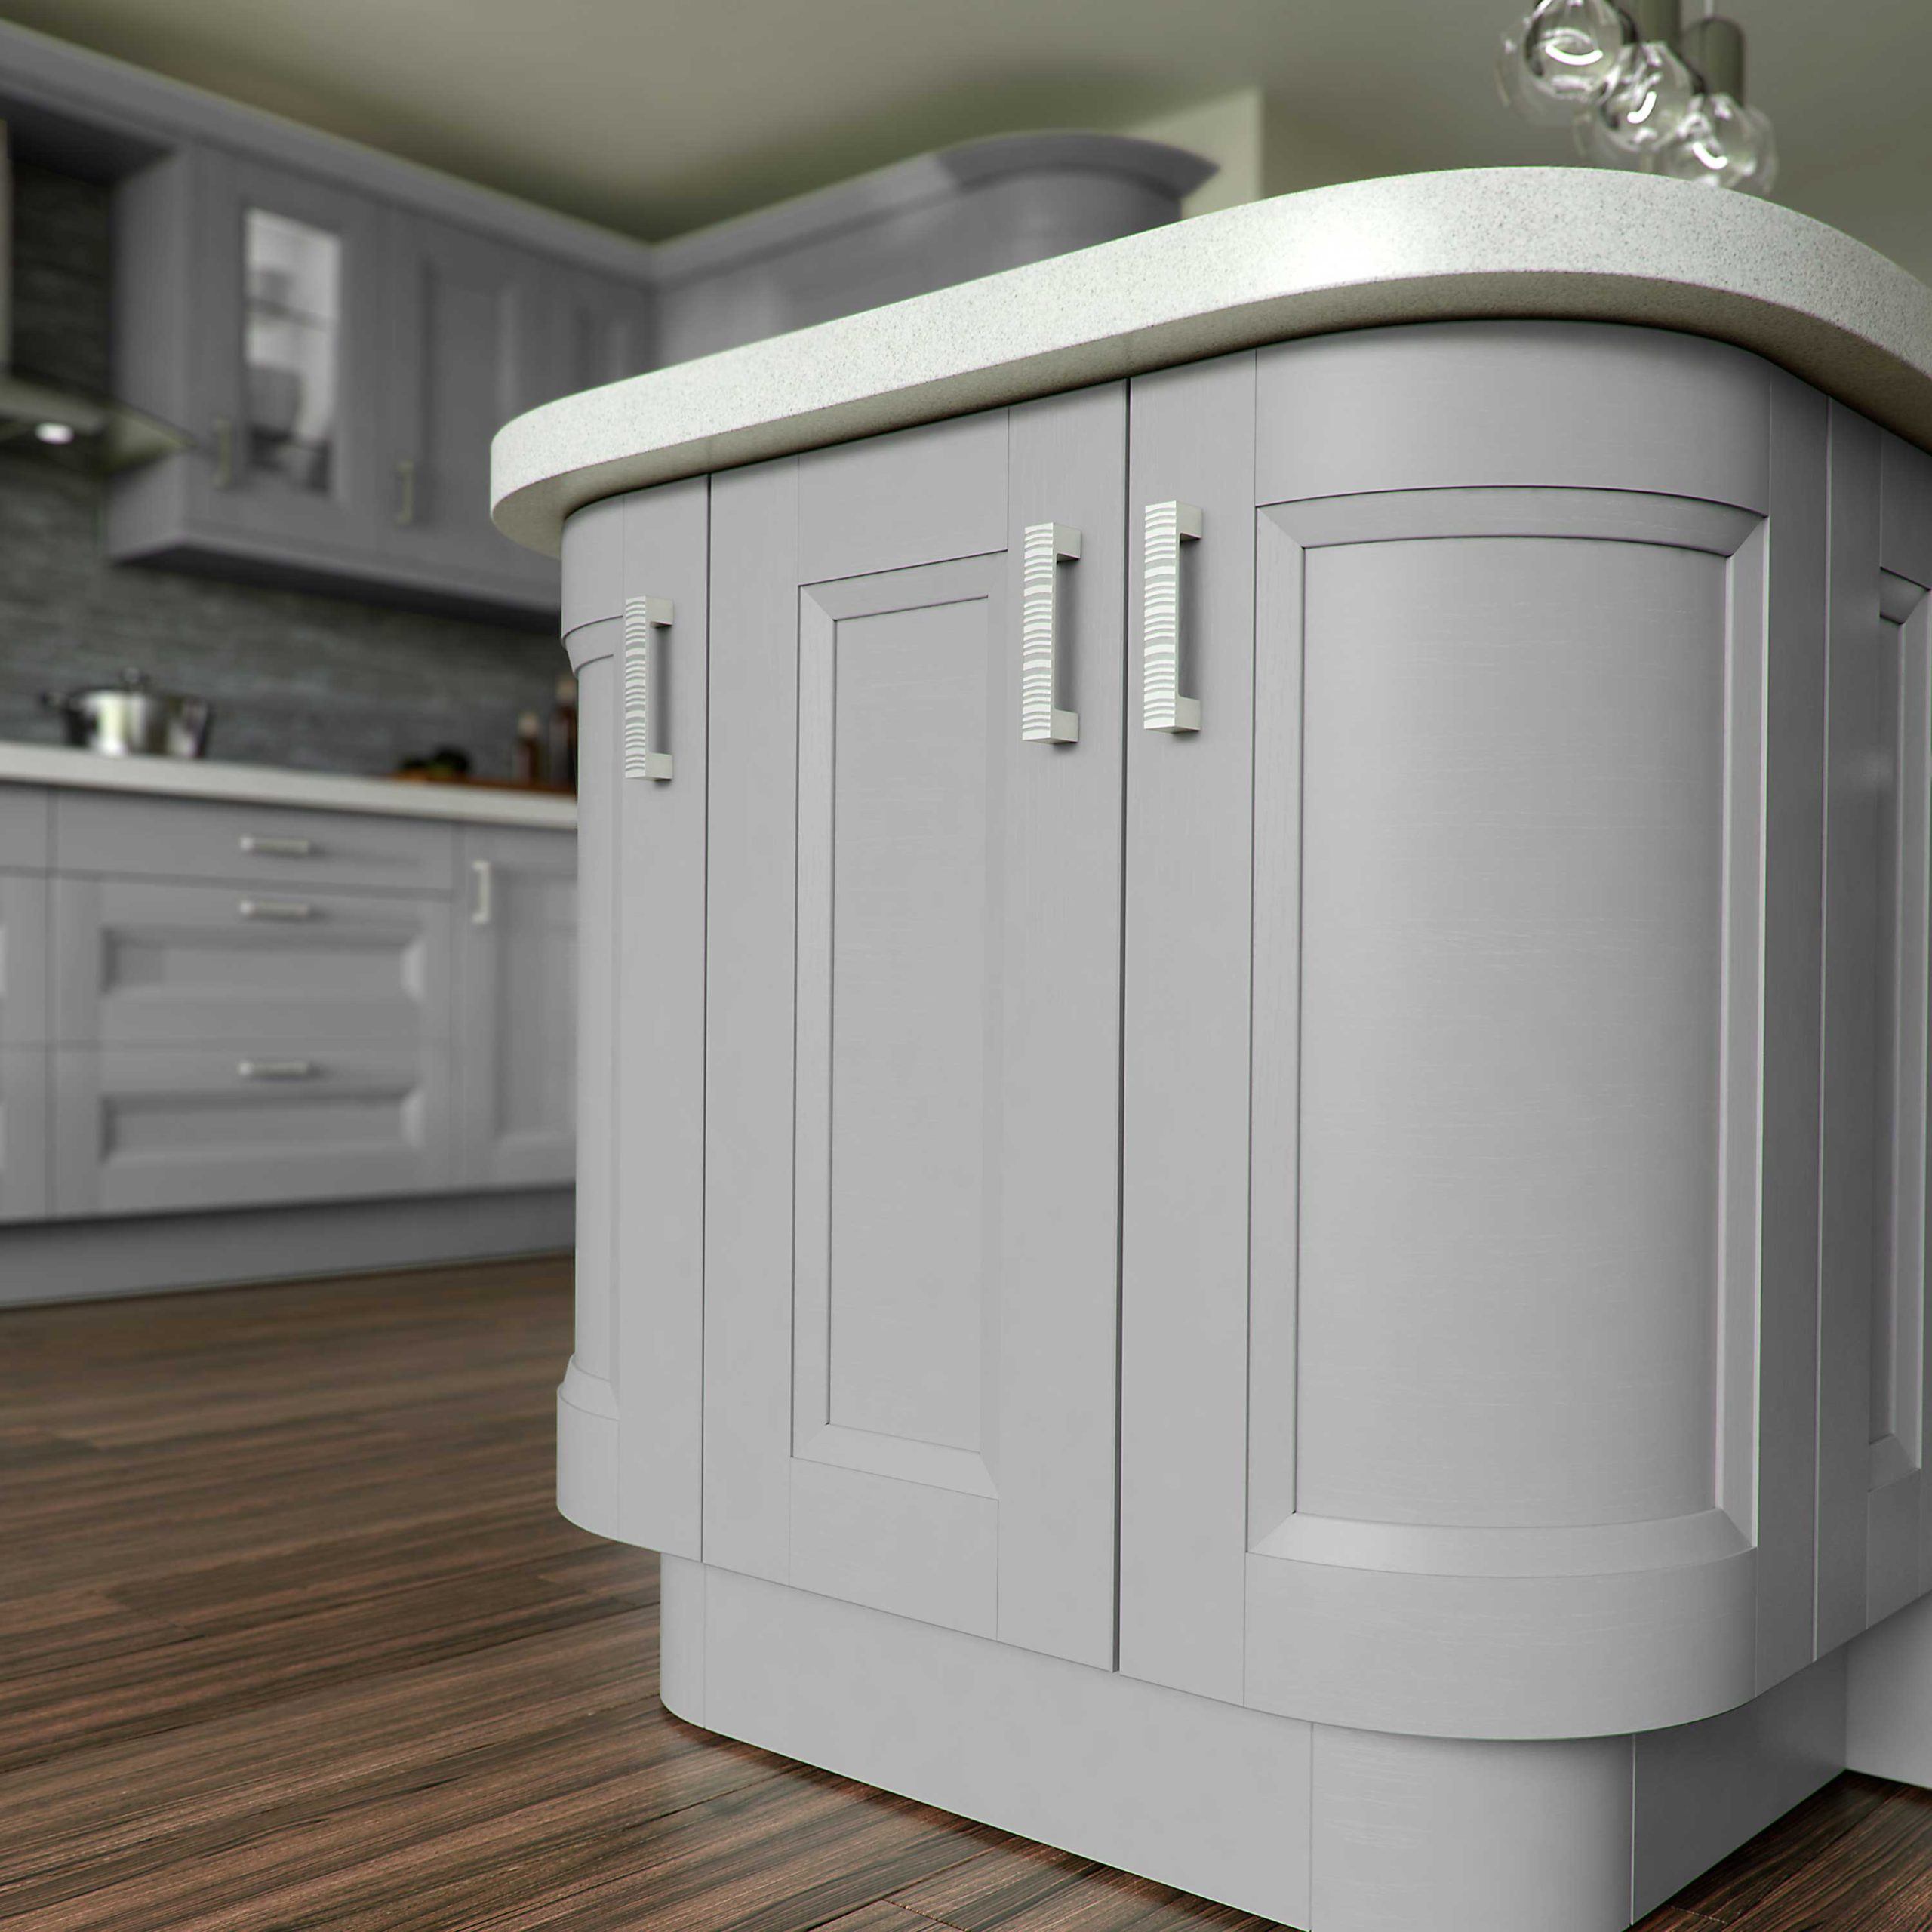 A warm grey paint finish for elegant cabinetry